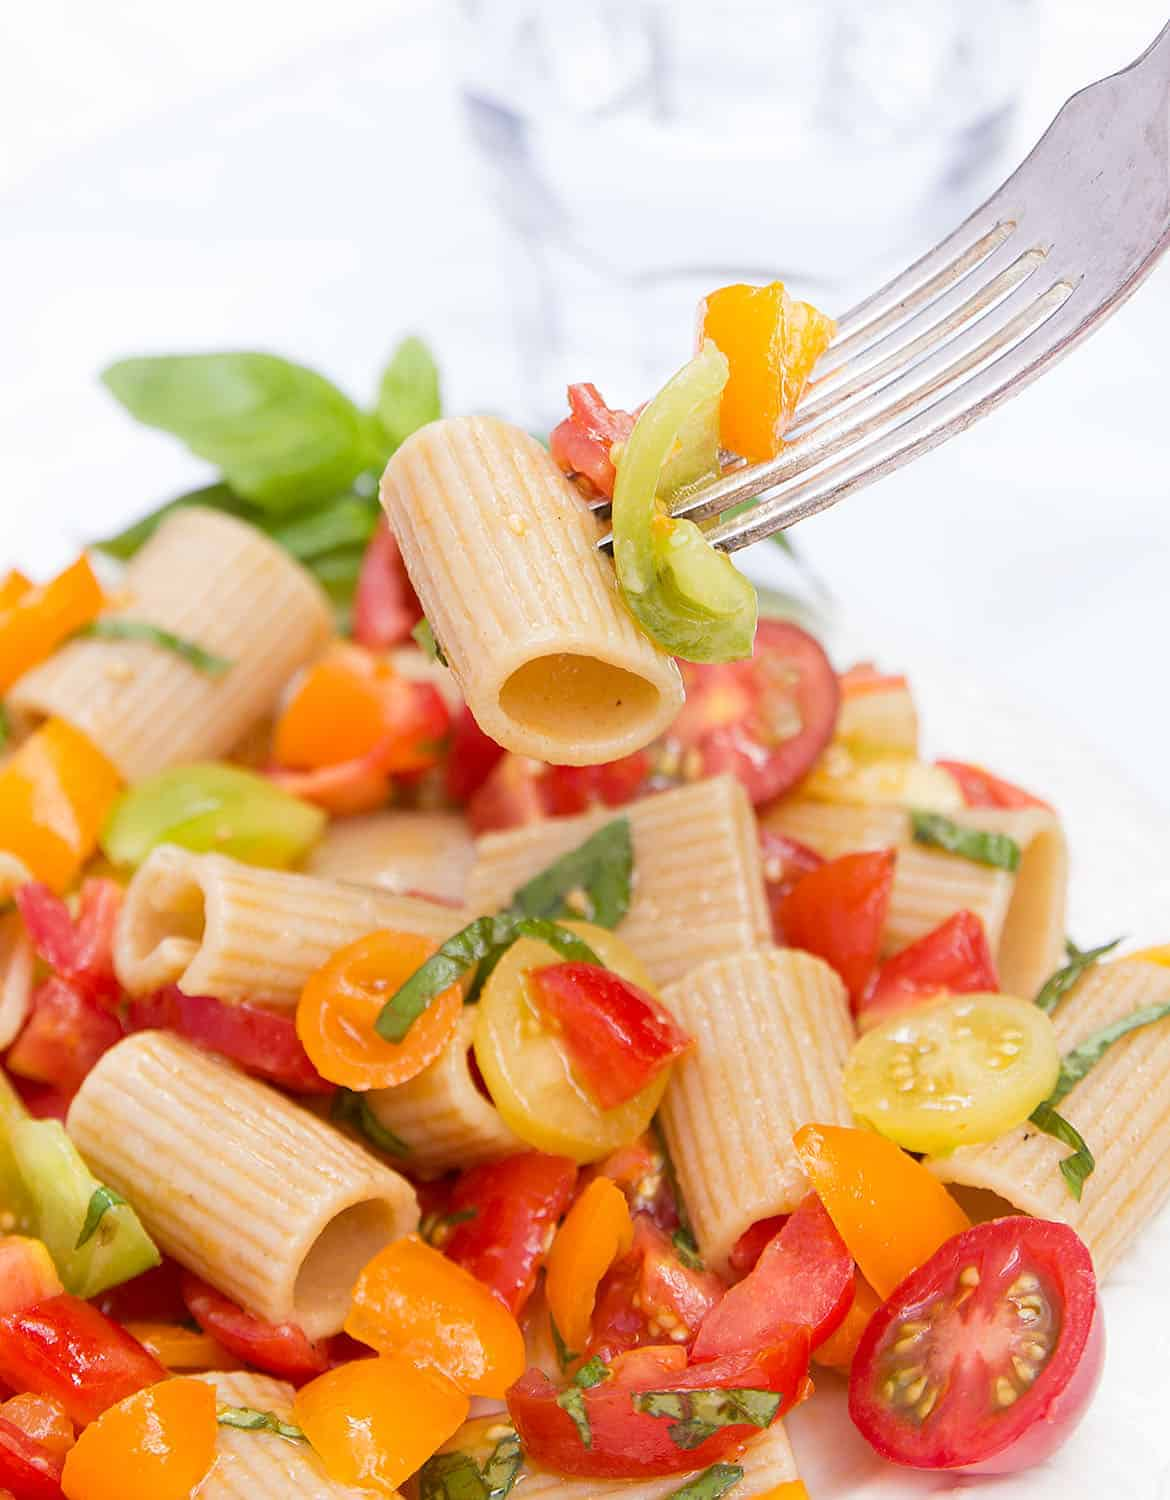 This raw cherry tomato pasta is summer on a plate! Ripe and juicy tomatoes, fresh garlic, basil and extra virgin olive oil make the best pasta sauce ever!